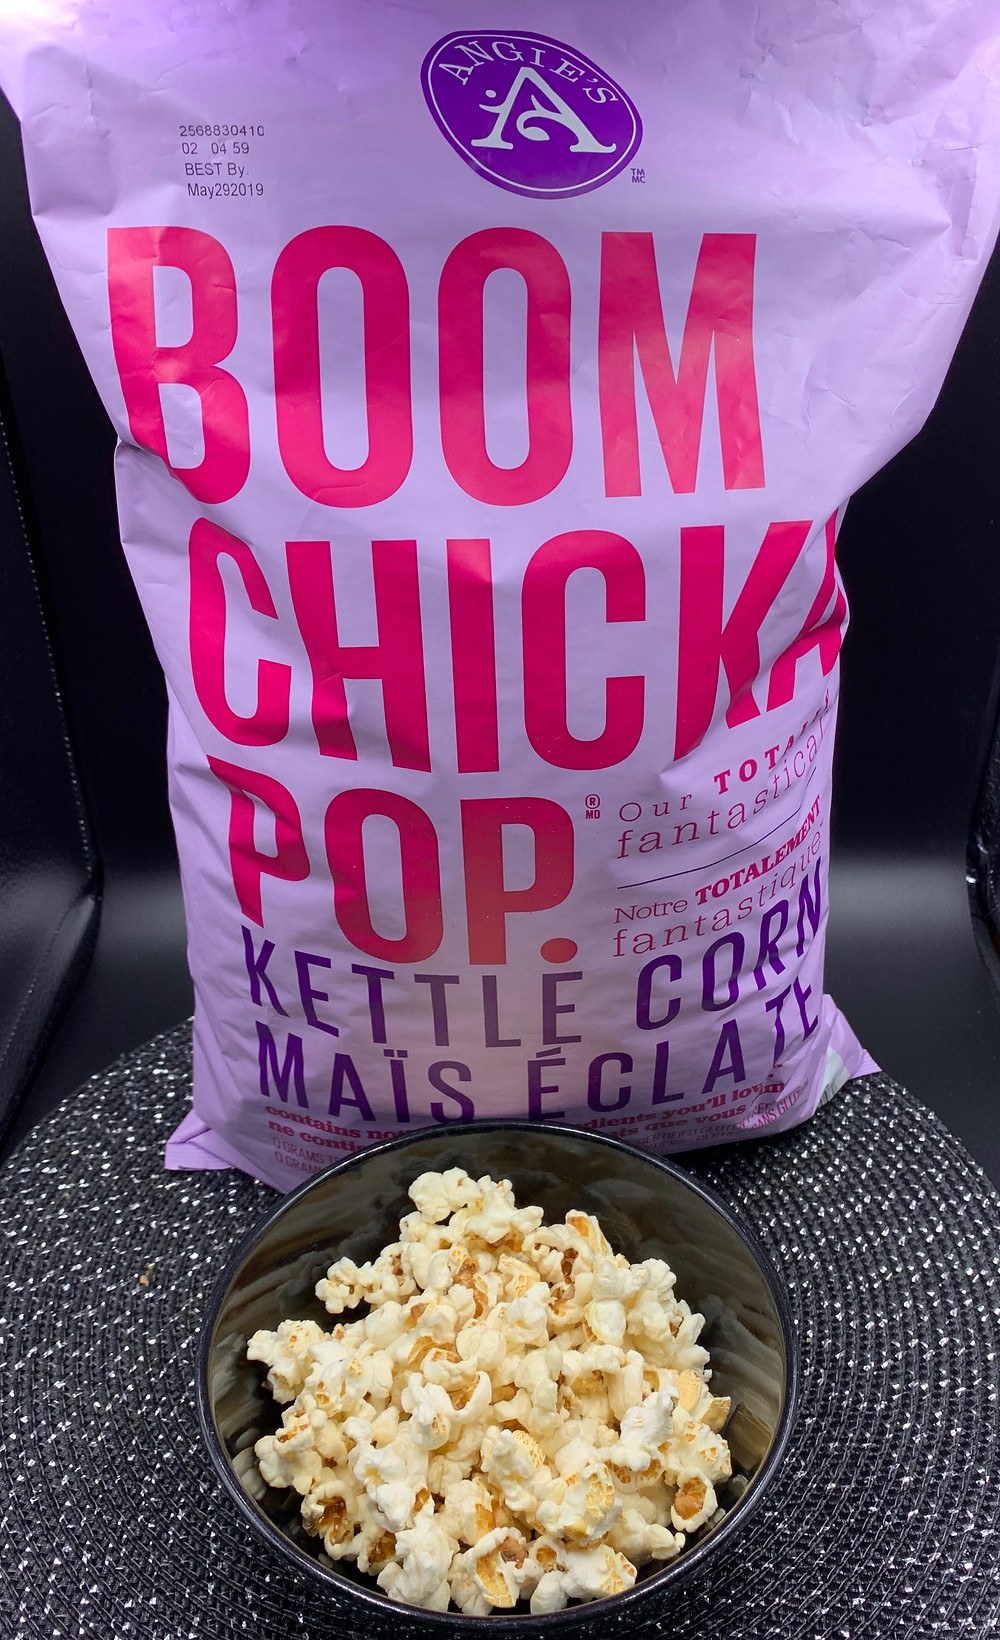 Costco Angie's BOOM CHICKA POP Kettle Corn